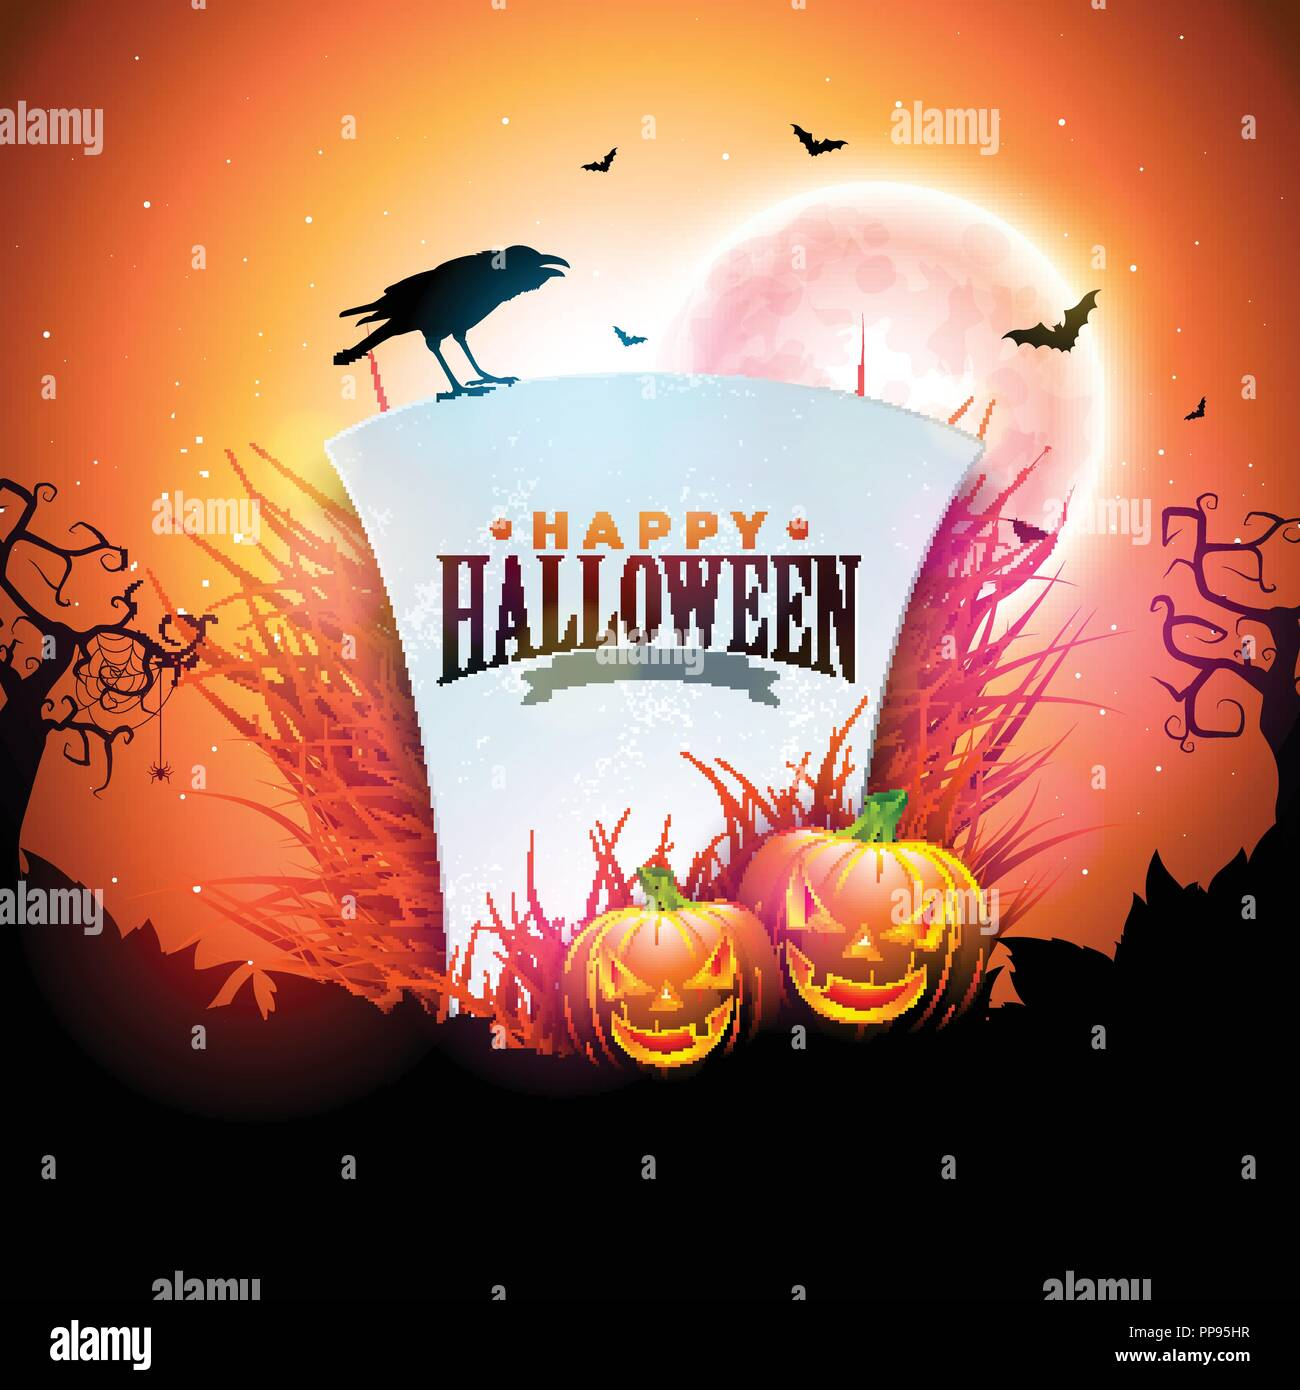 Happy Halloween Banner Illustration With Moon Flying Bats Pumpkins And Tombstone On Orange Night Sky Background Vector Holiday Design Template